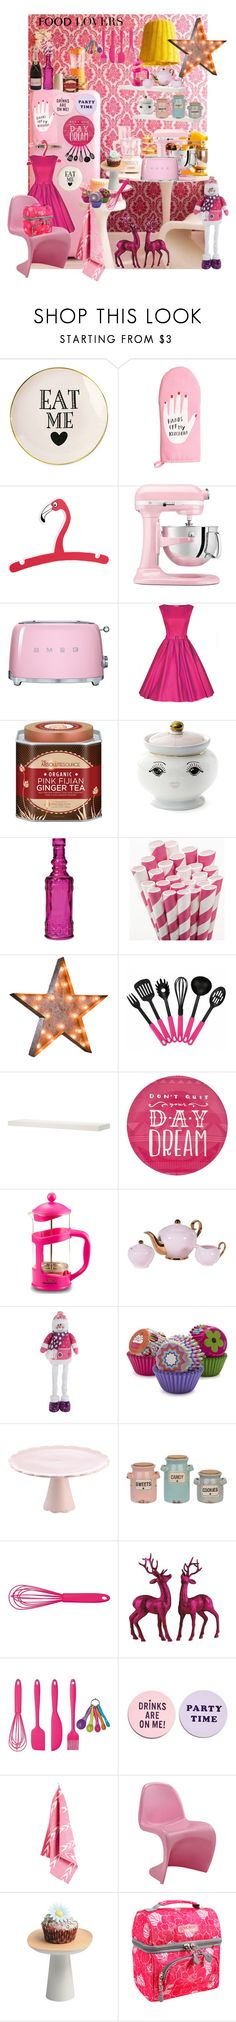 """A Pink Vintage Holiday Kitchen"" by decorkiki on Polyvore featuring interior, interiors, interior design, home, home decor, interior decorating, H&M, KitchenAid, Smeg and Wakaya Perfection"